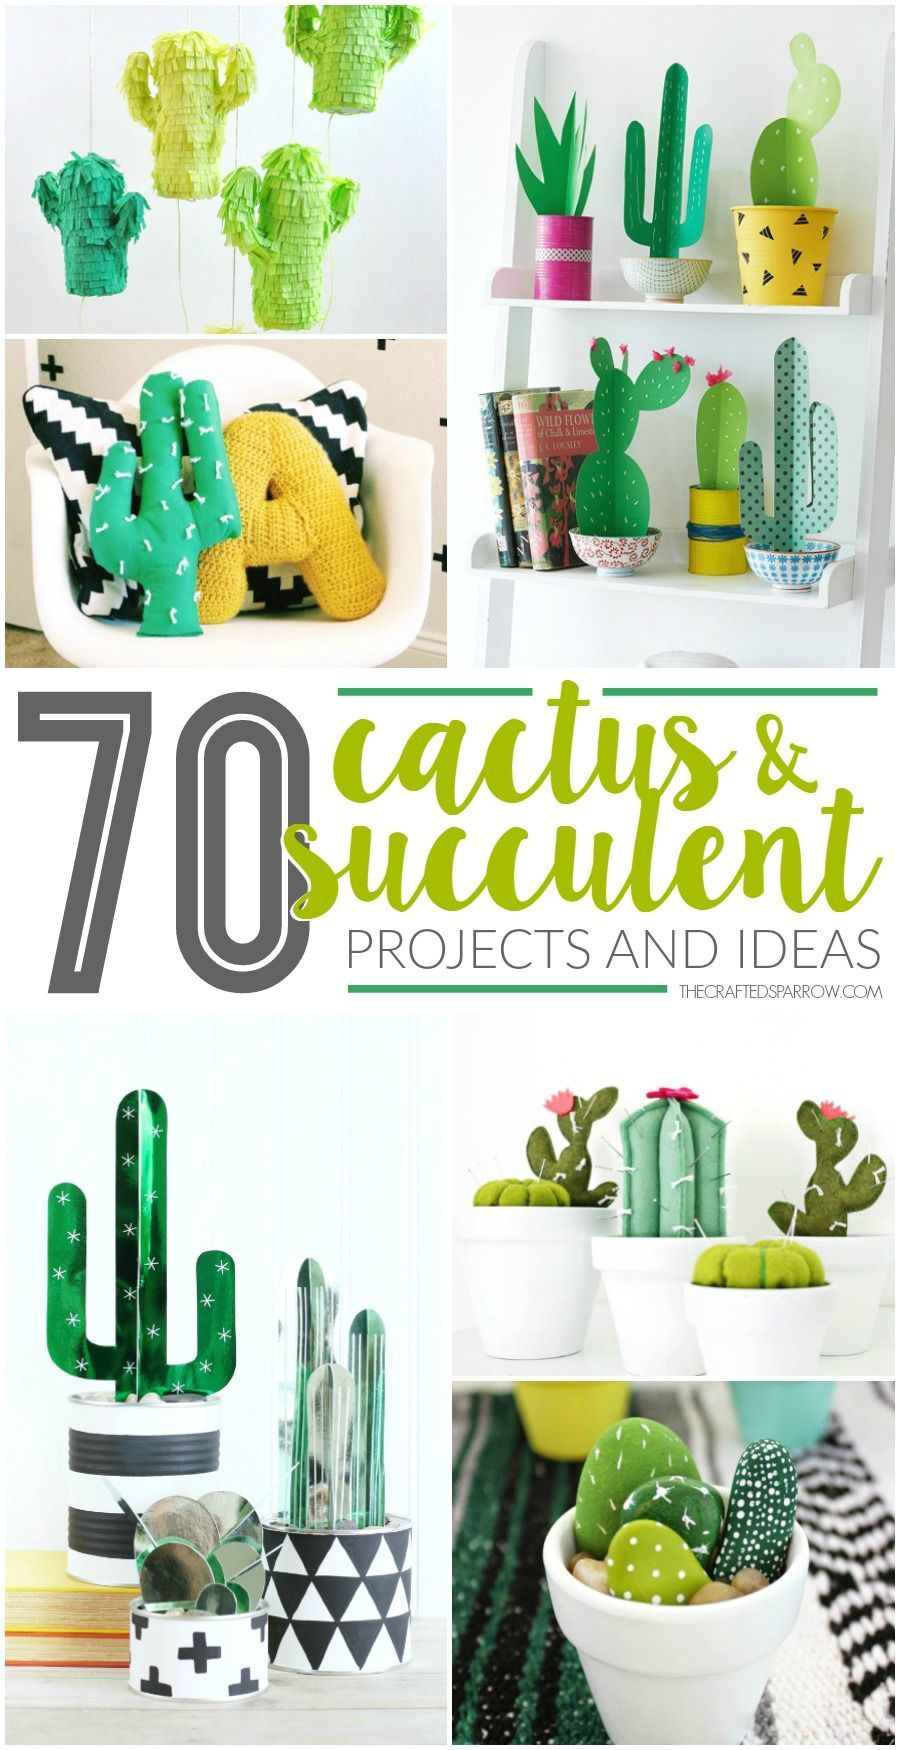 70 Faux Cactus & Succulent Projects and Ideas   Cacti, Interiors and ...